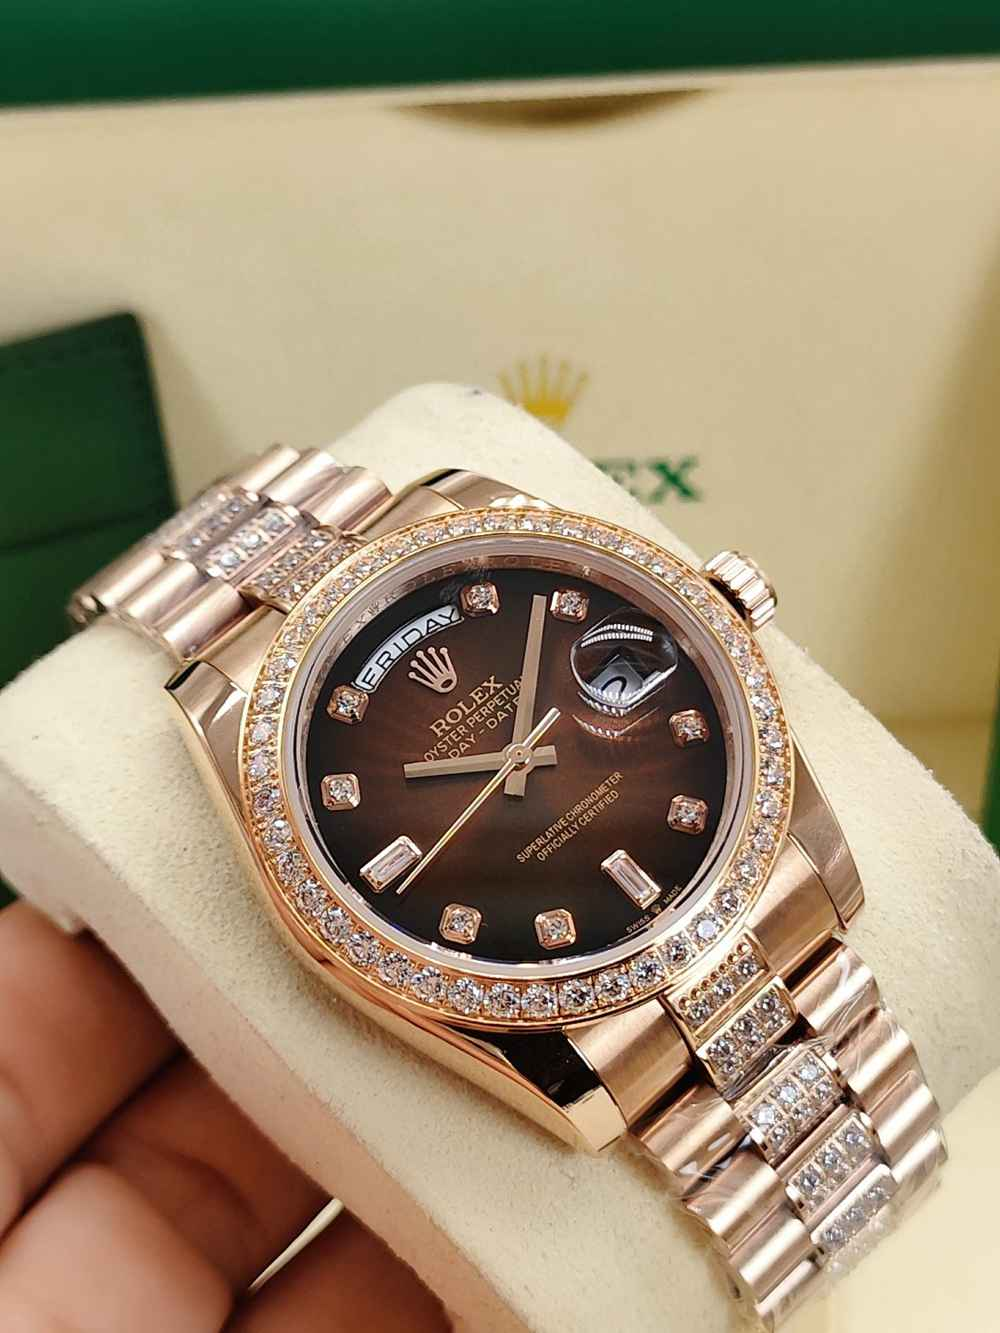 DayDate rose gold 36mm brown/rose gold/white pearl dials AAA diamonds straps S040